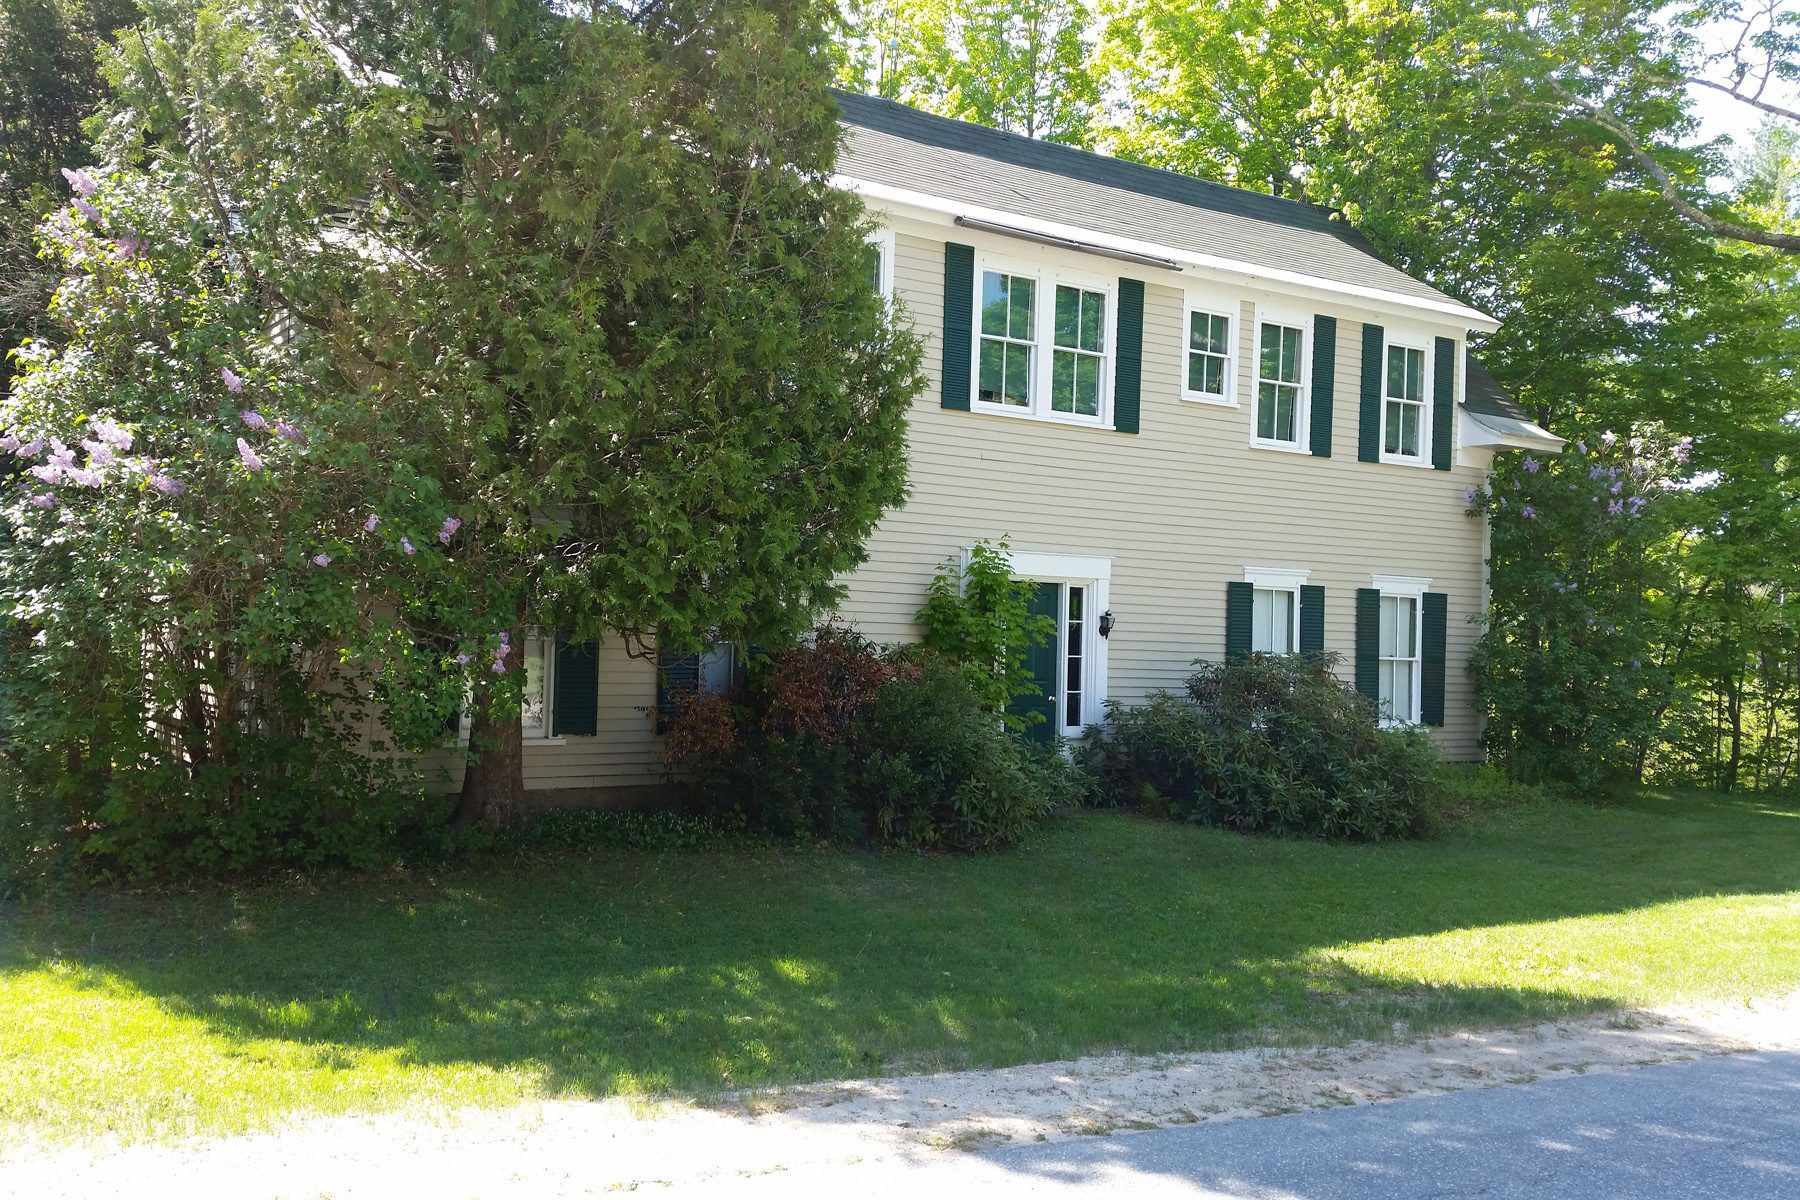 Single Family Home for Sale at 440 South Road, Newbury 440 South Rd Newbury, New Hampshire 03255 United States